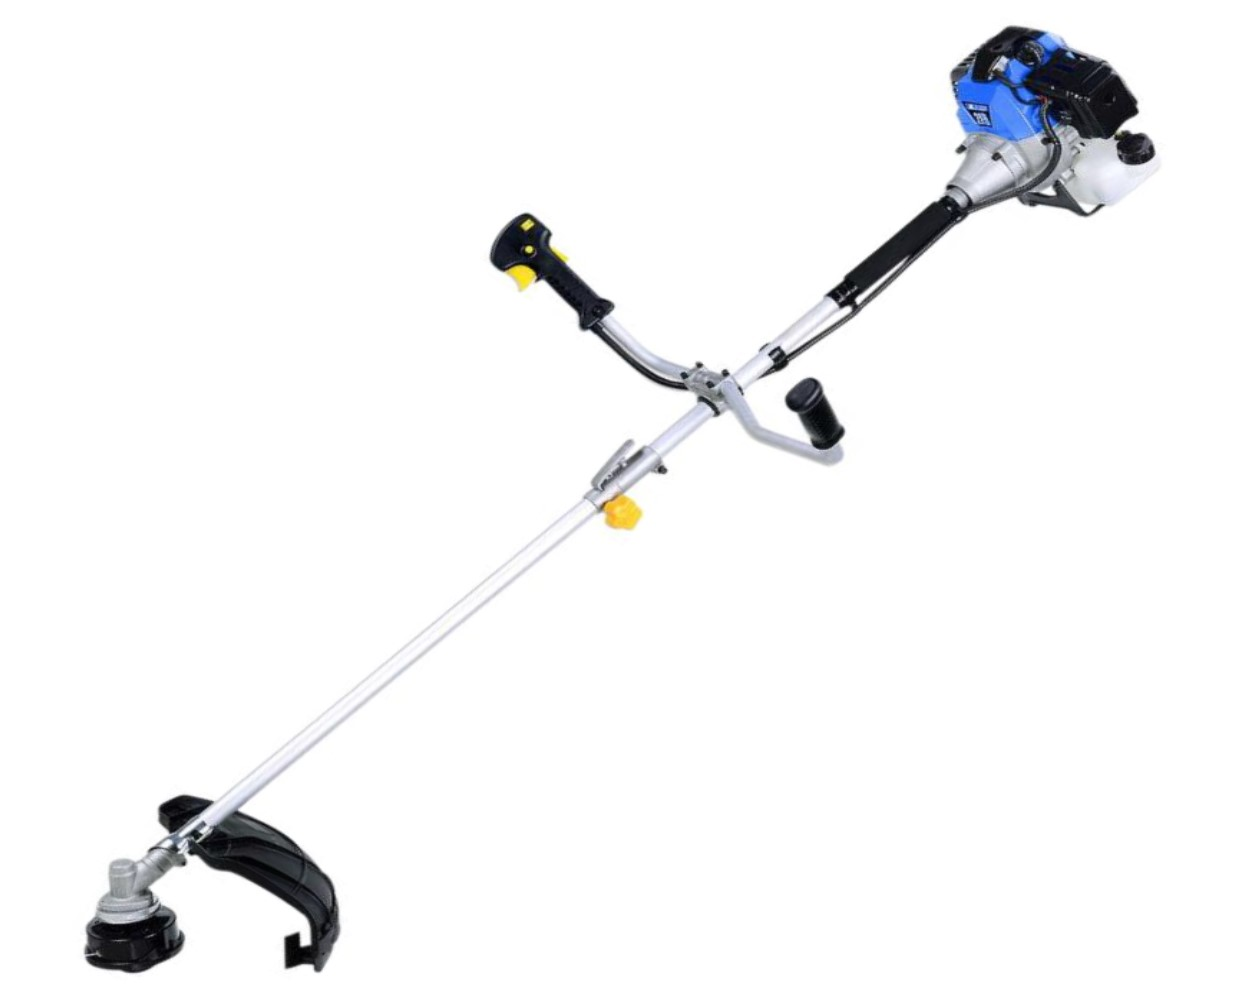 Details about Straight Shaft Trimmer Gas Weed Eater Commercial Brush Cutter  Free Strap 43cc